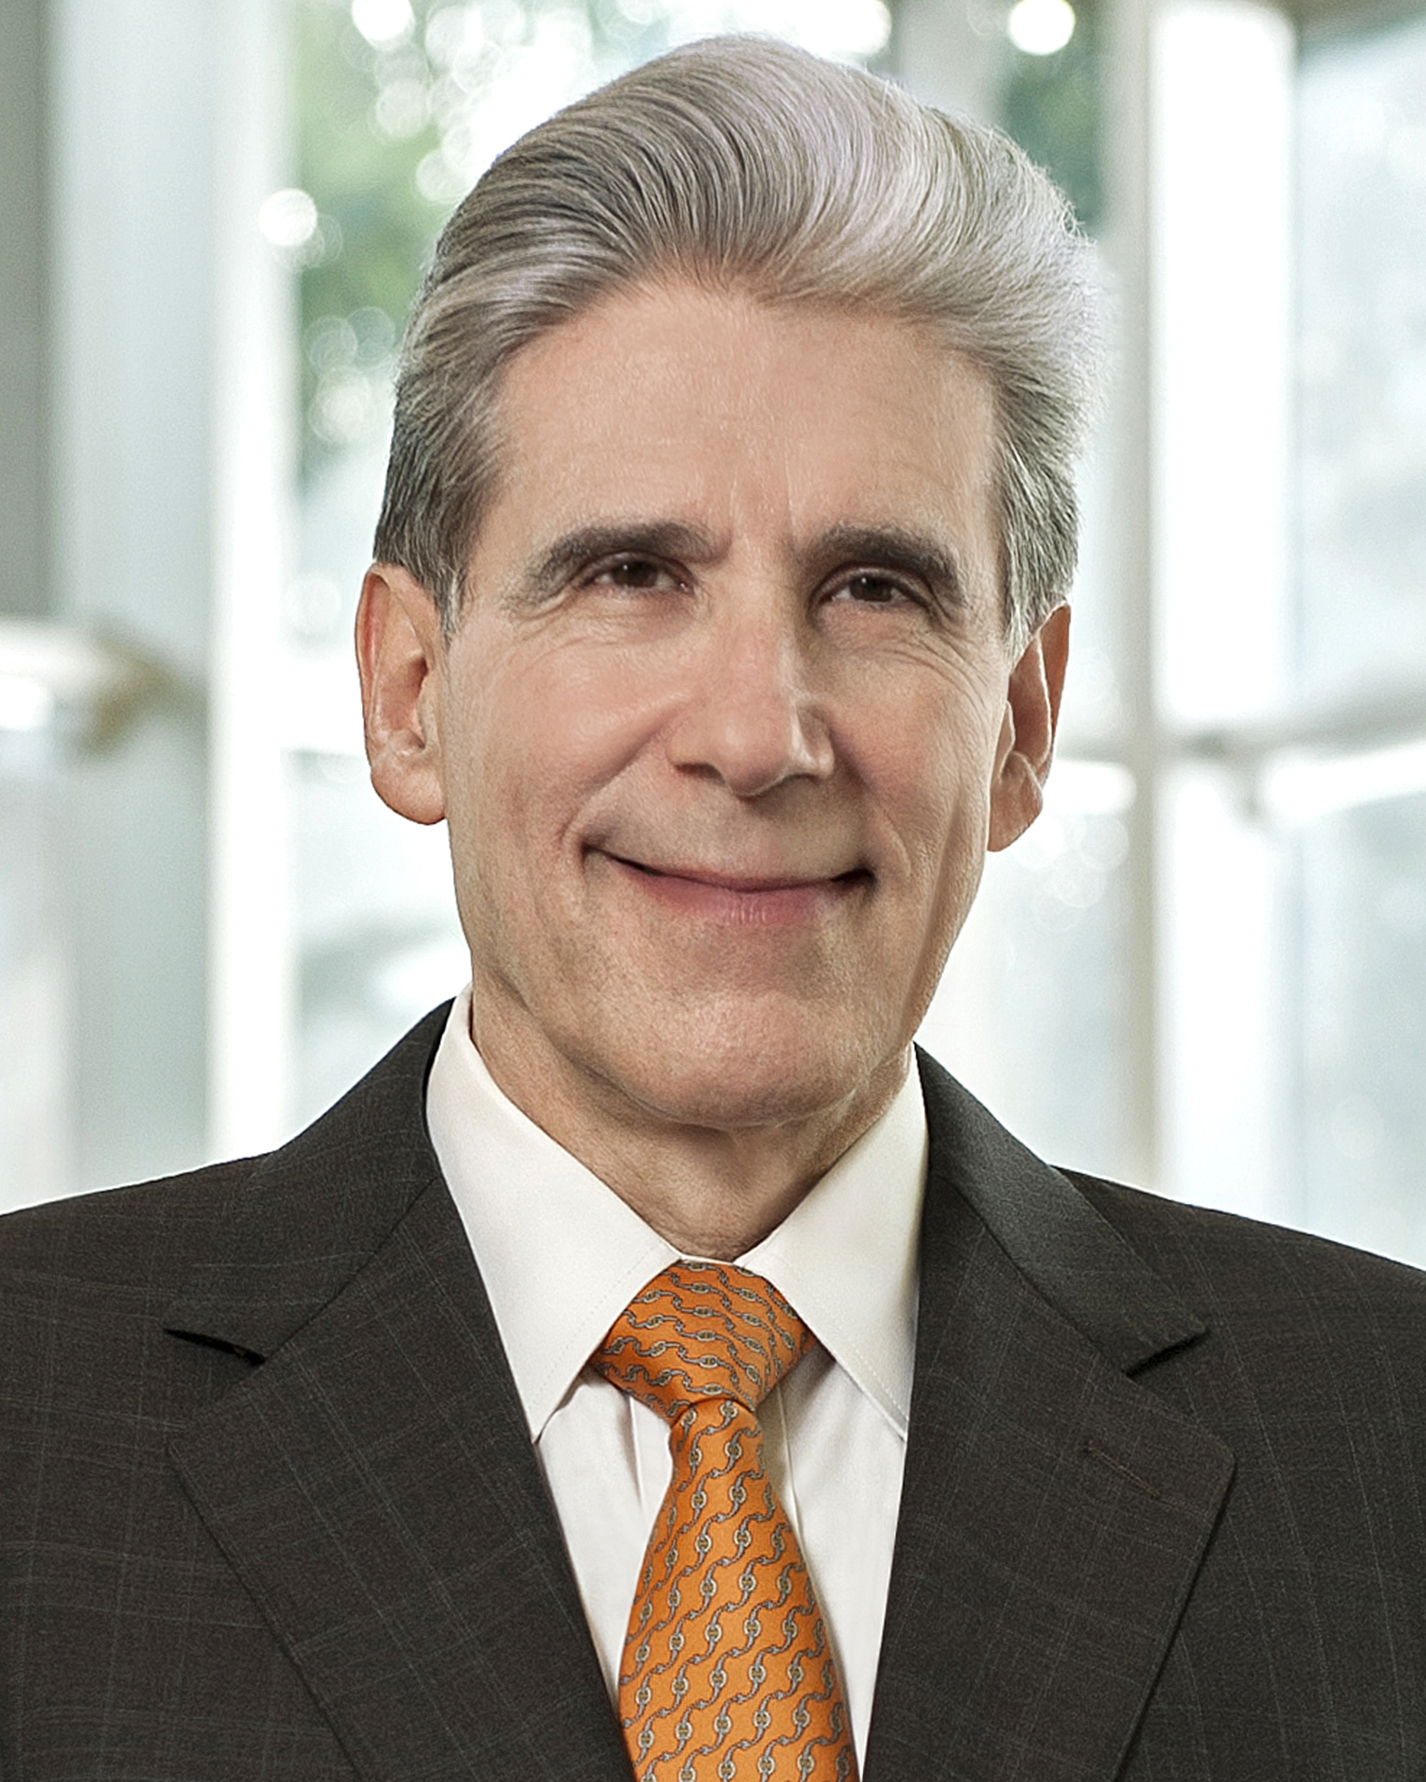 Julio Frenk,  MD, PhD, MPH